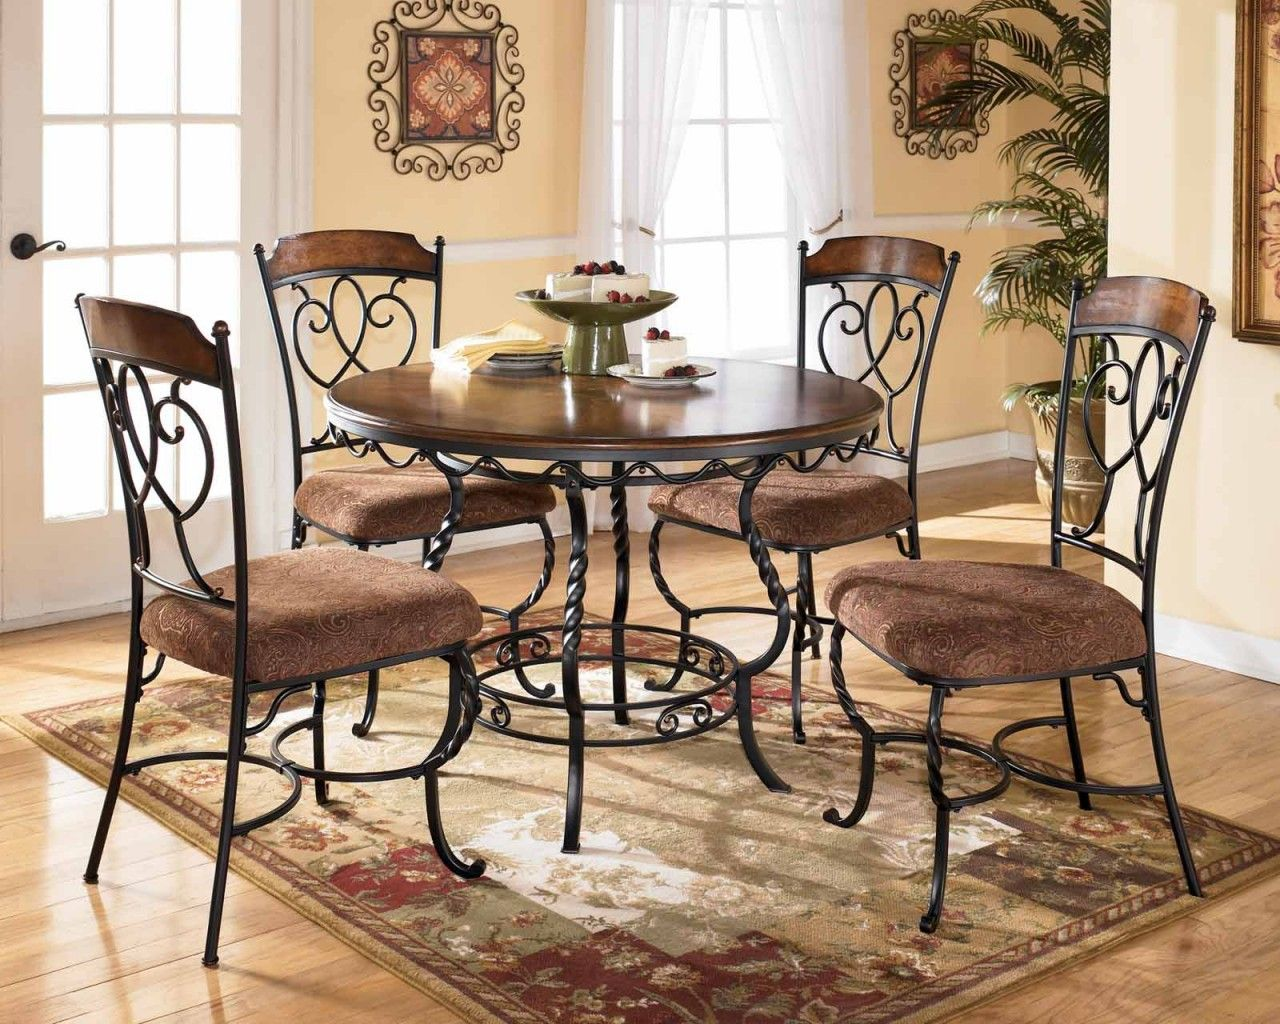 kitchen tables and chairs sets table dining chairs with cushion fabric for macy kitchen on kitchen interior table id=80379